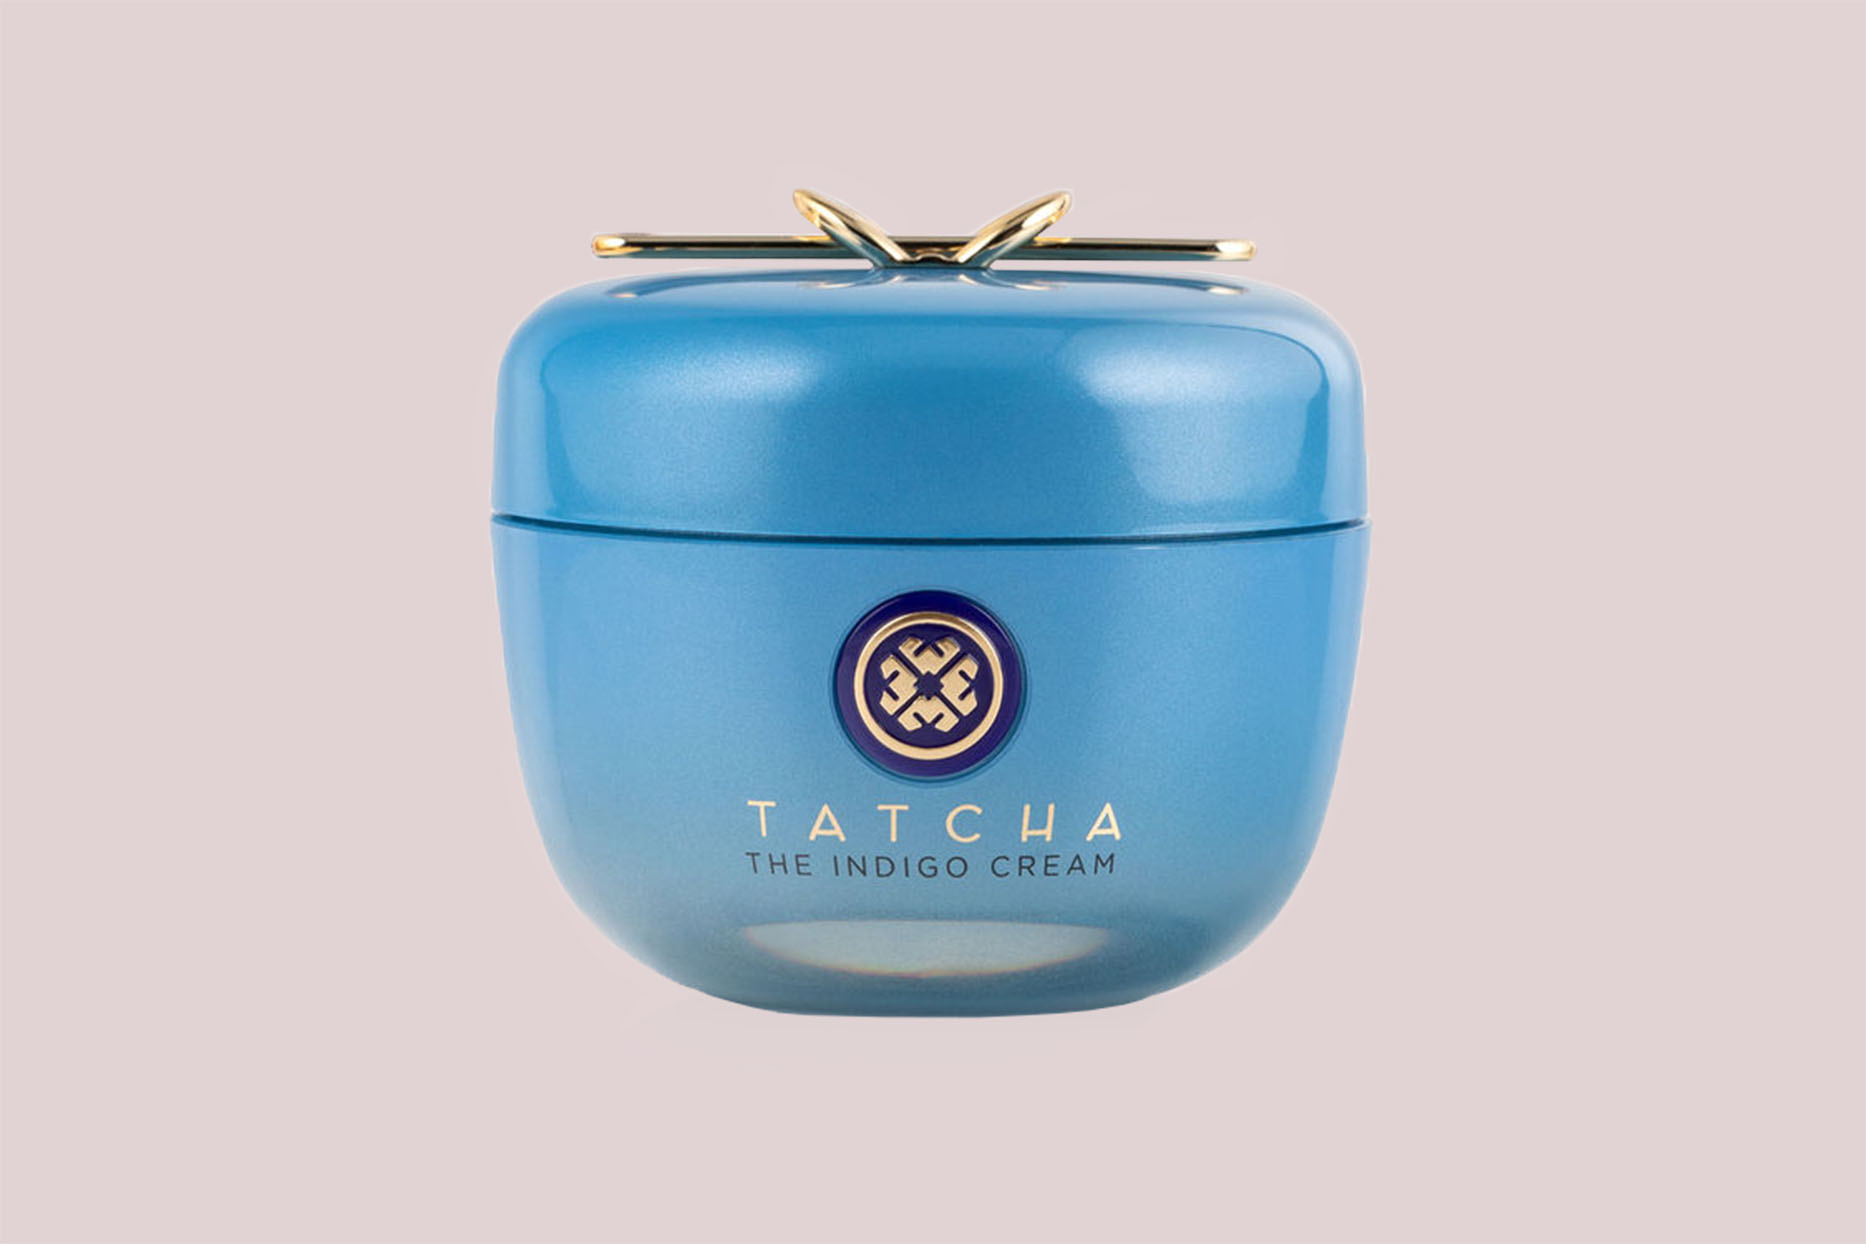 tatcha indigo cream skin care